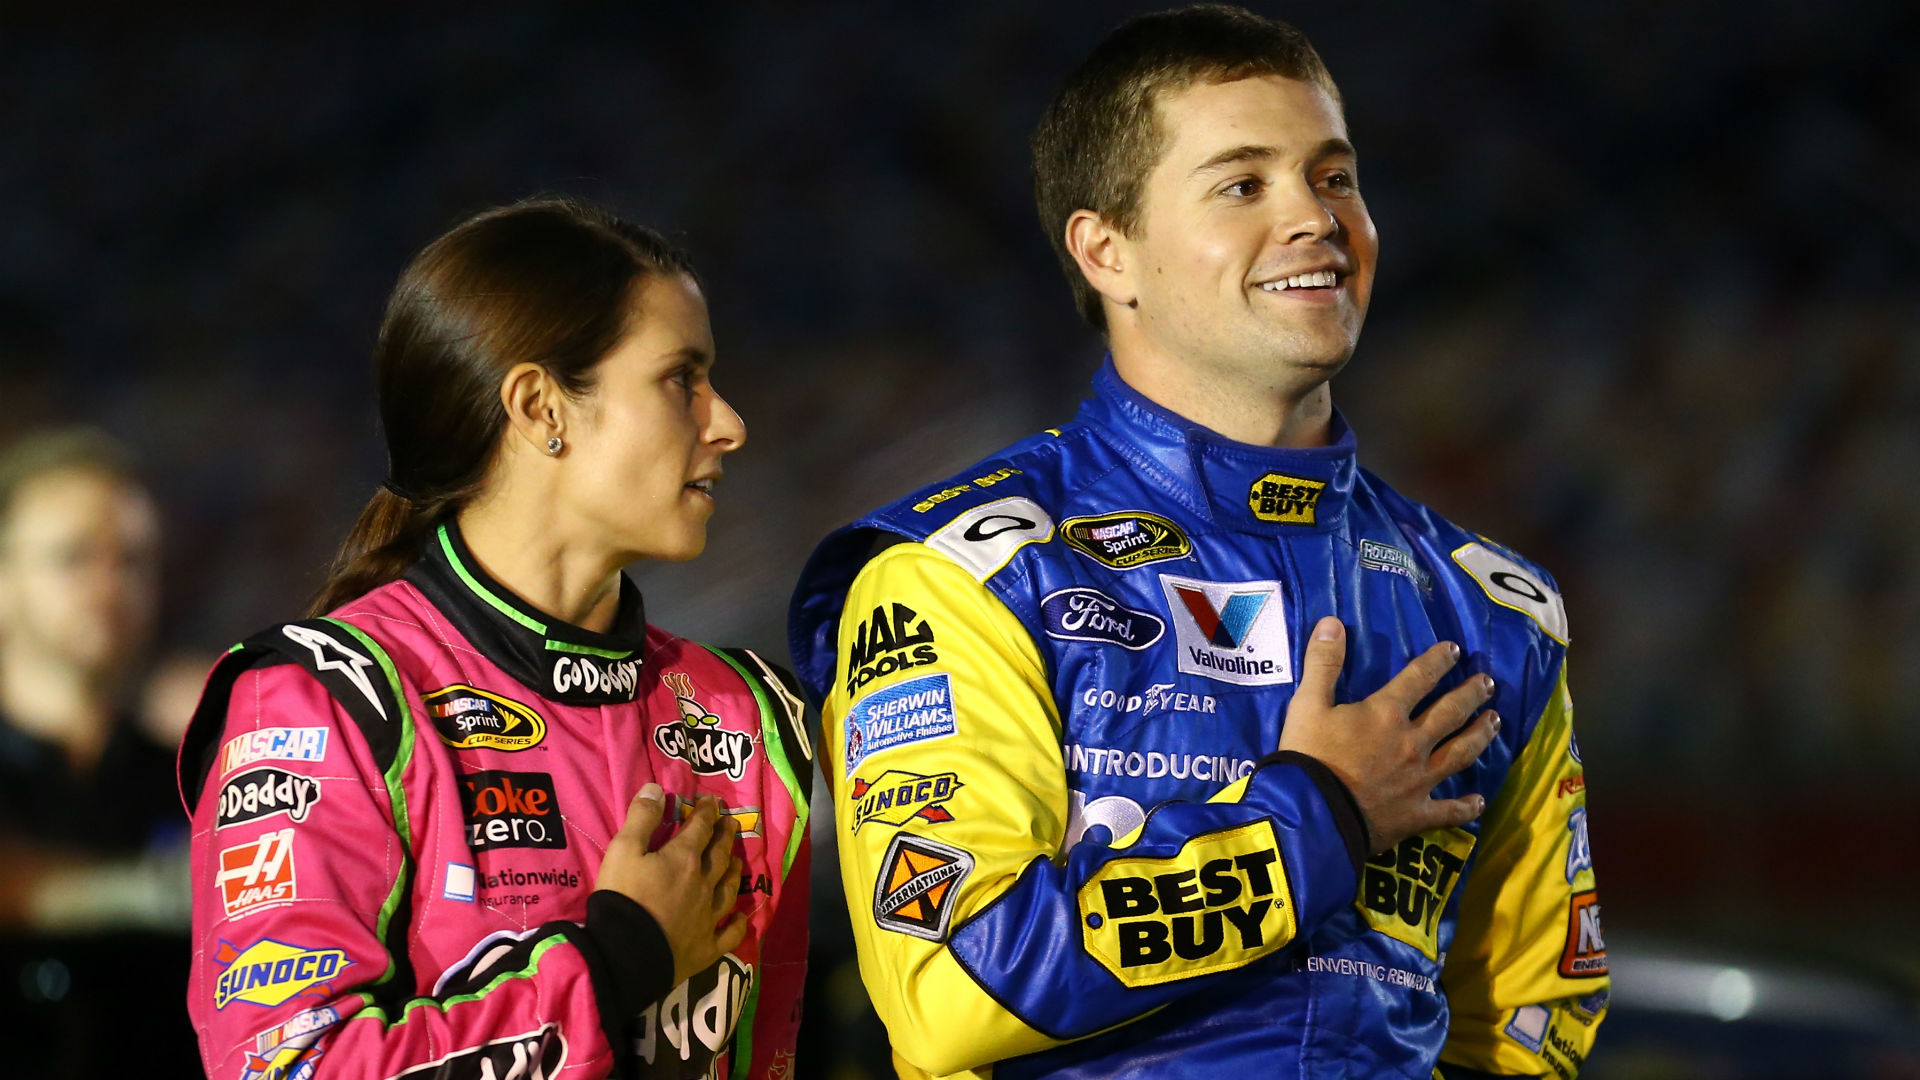 Ricky Stenhouse Jr. talks sexism in NASCAR, the national anthem, playoffs and more